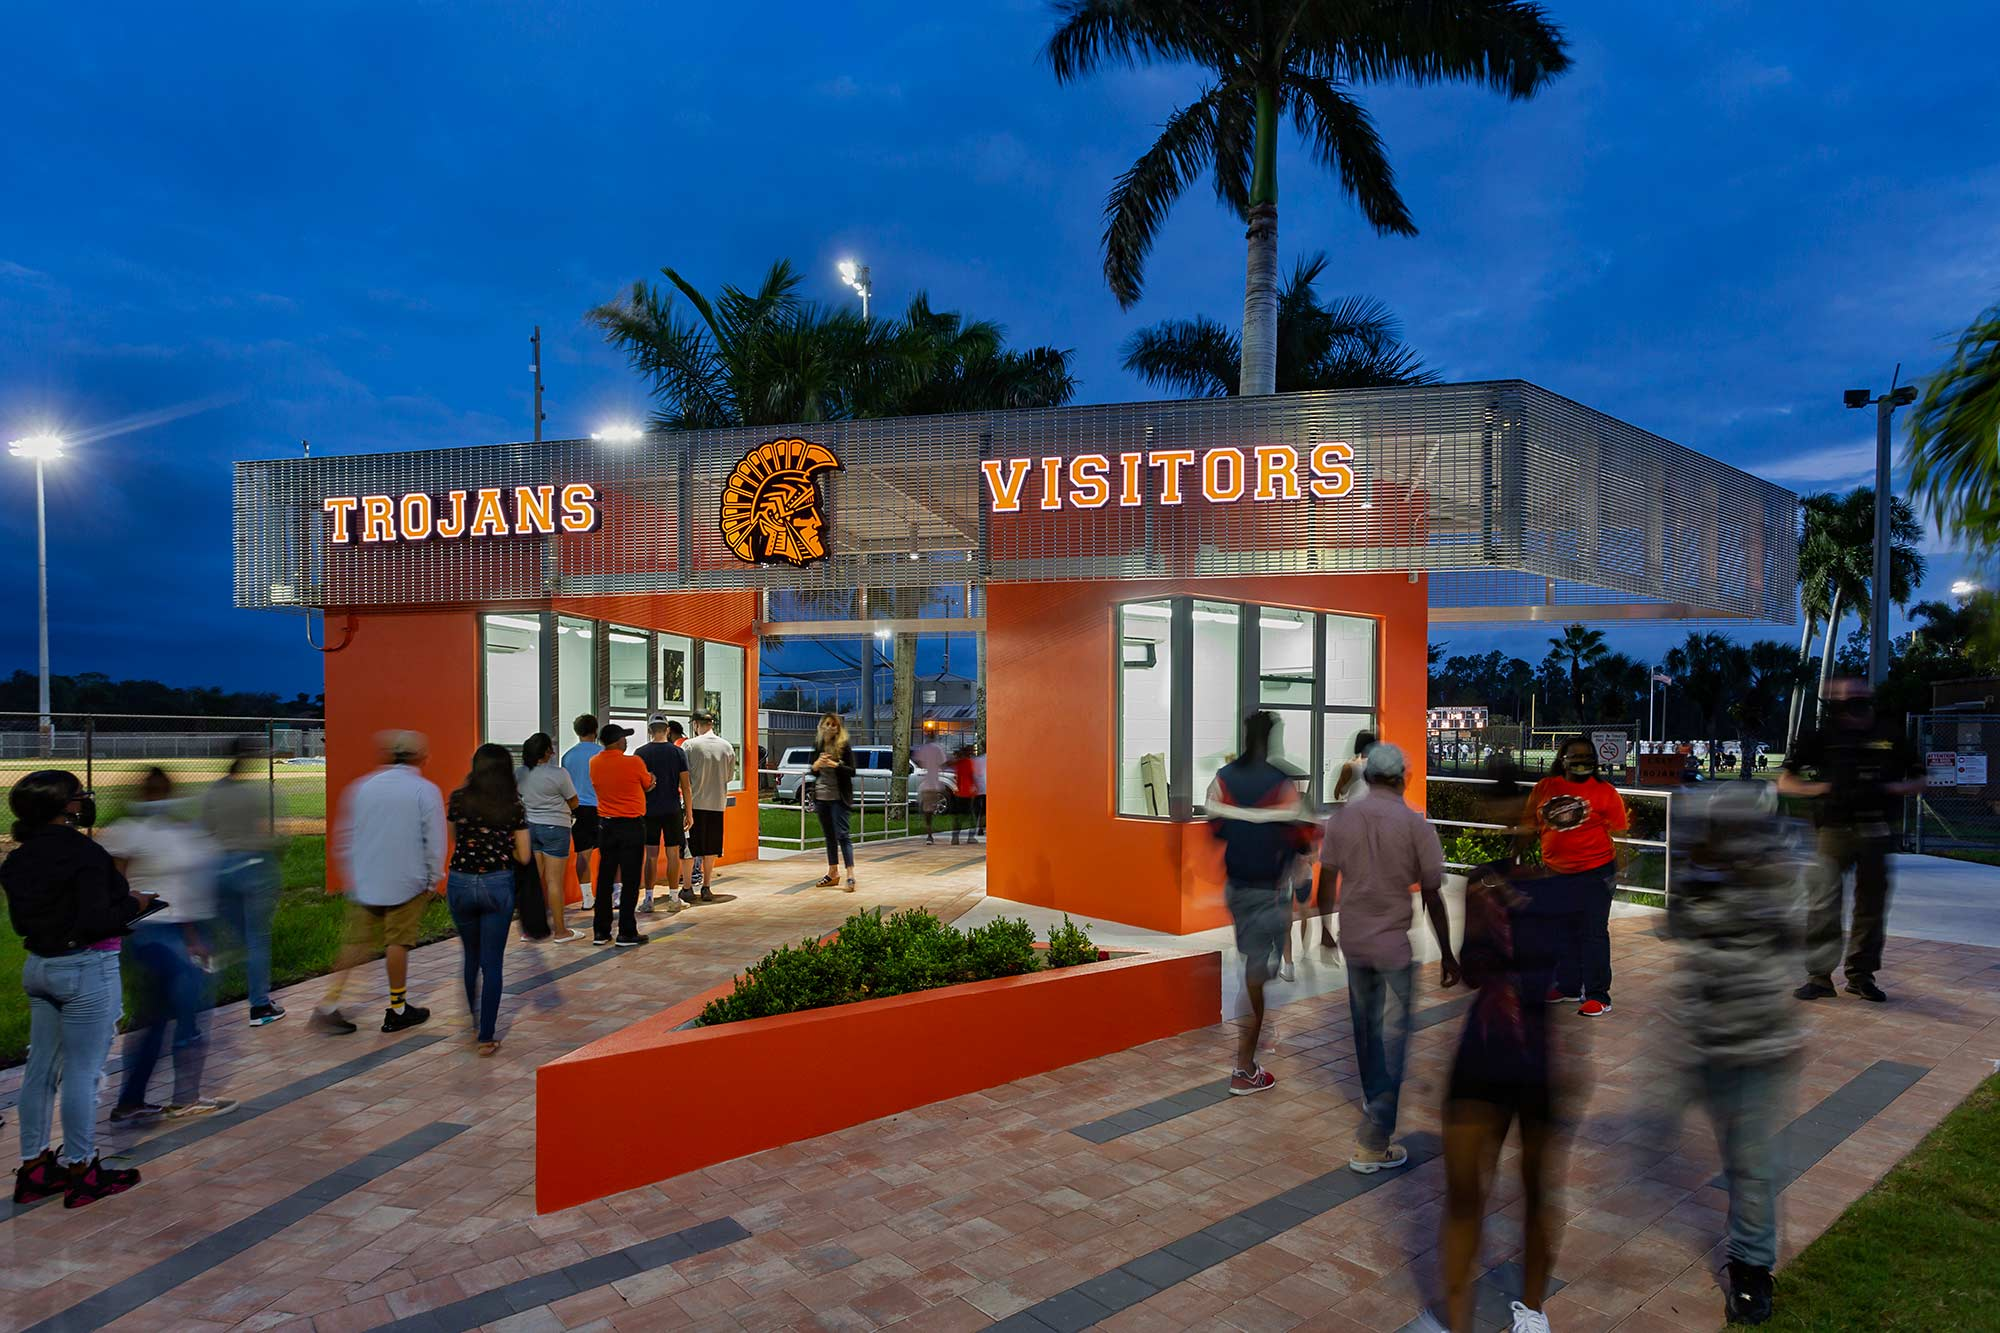 Main entry through ticket booths with home and away lanes.